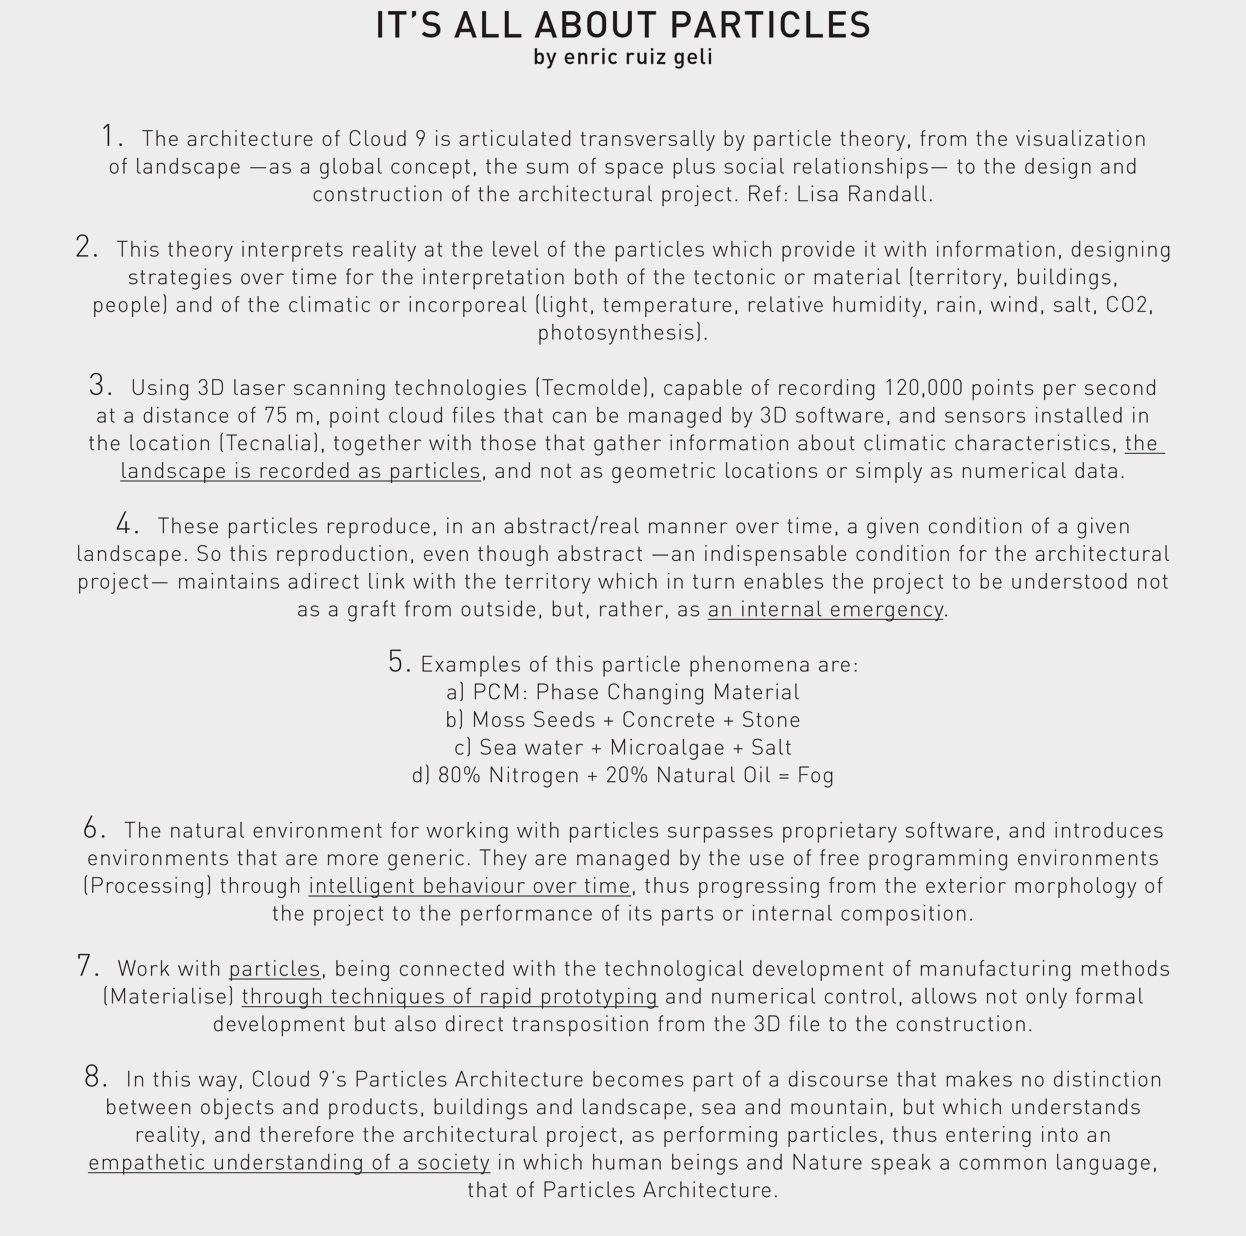 Particles Architecture Is A Theory That Reflects On An Empathetic  Understanding Of Society From The Visualization Of Landscape To The Design  And ...